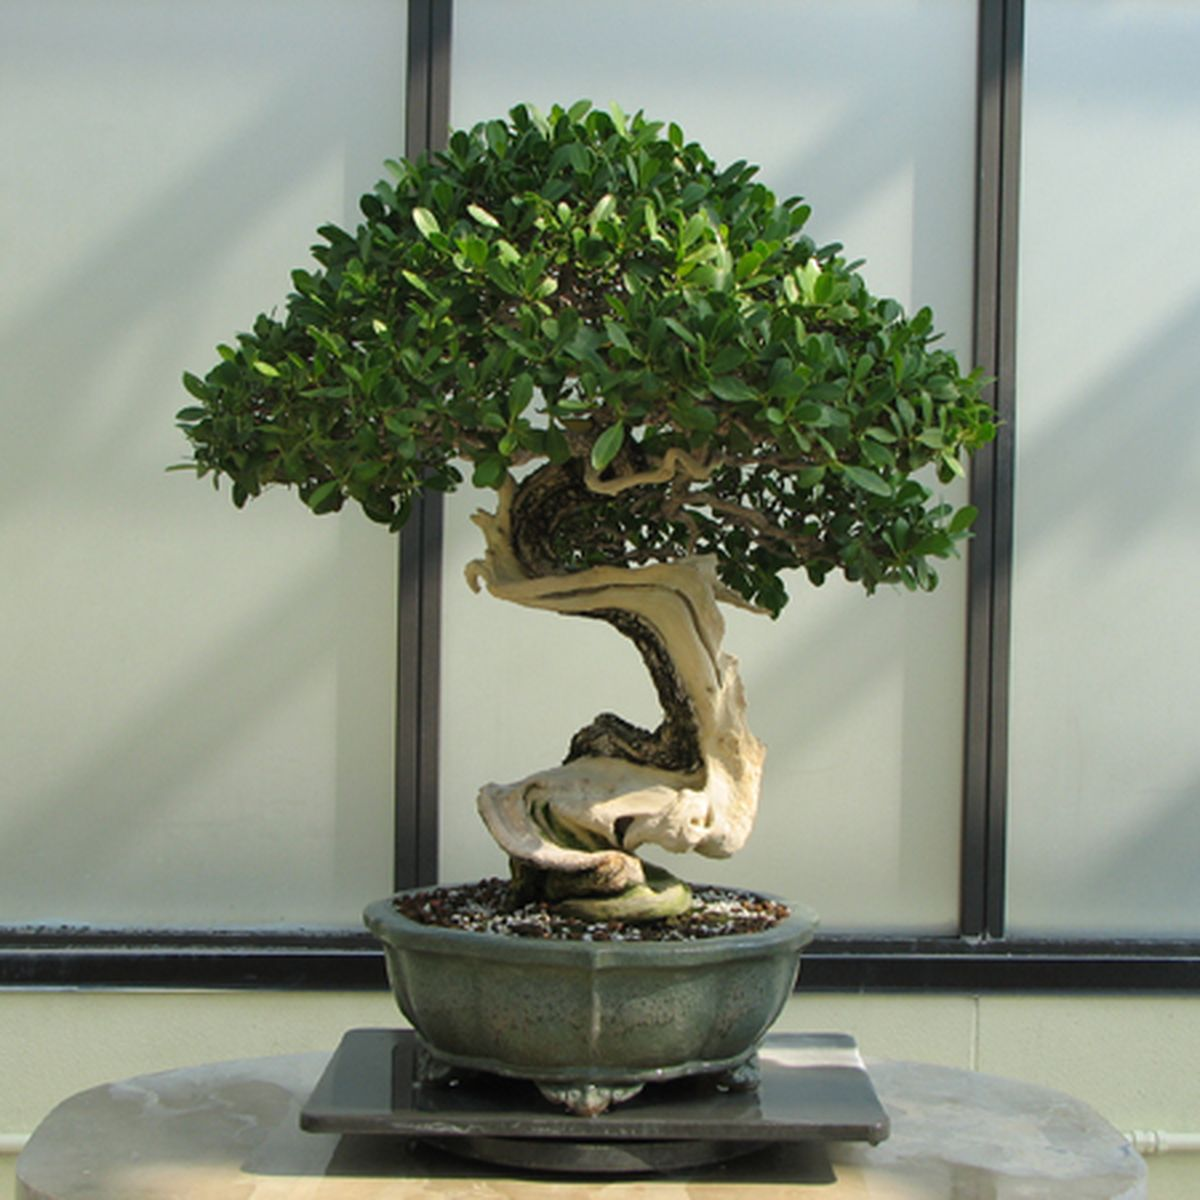 Bonsai Tree Care Guide For Beginners How To Grow A Bonsai Plant